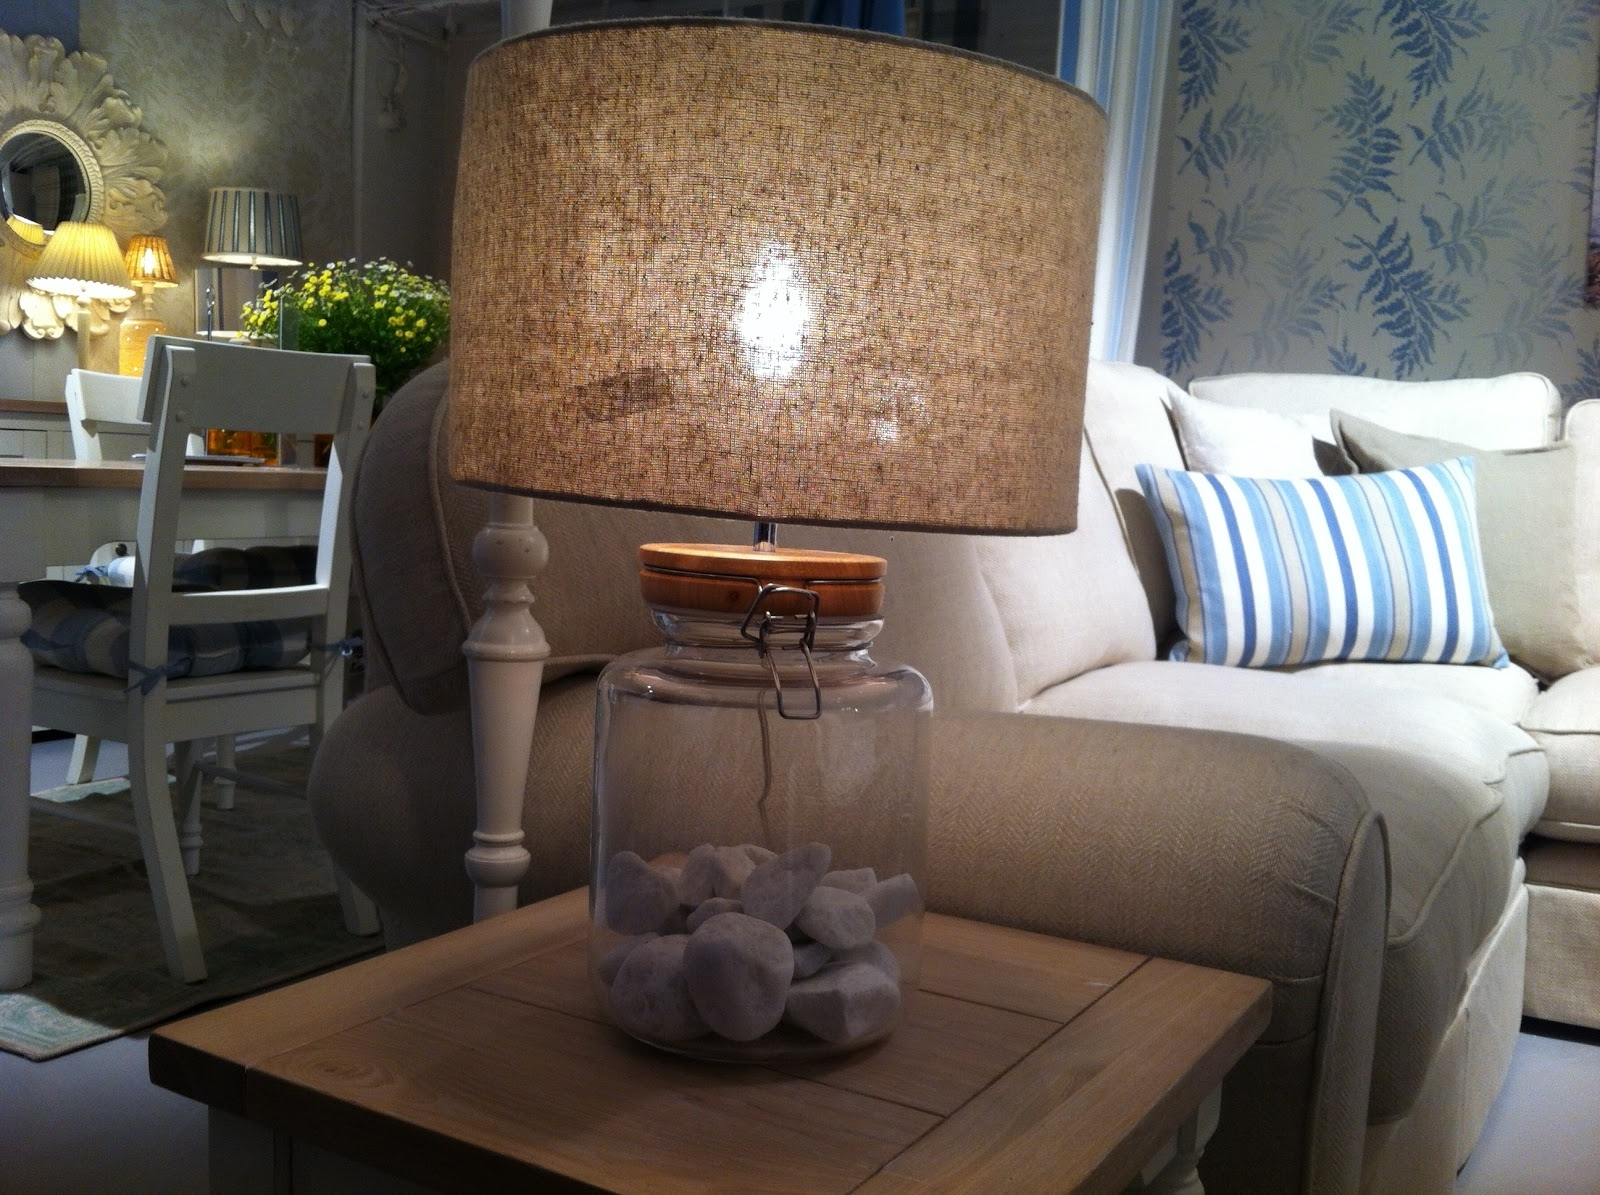 Furniture : Lamp Modern End Table Design White Glass Lamps Wooden Within Recent Laura Ashley Table Lamps For Living Room (View 11 of 20)